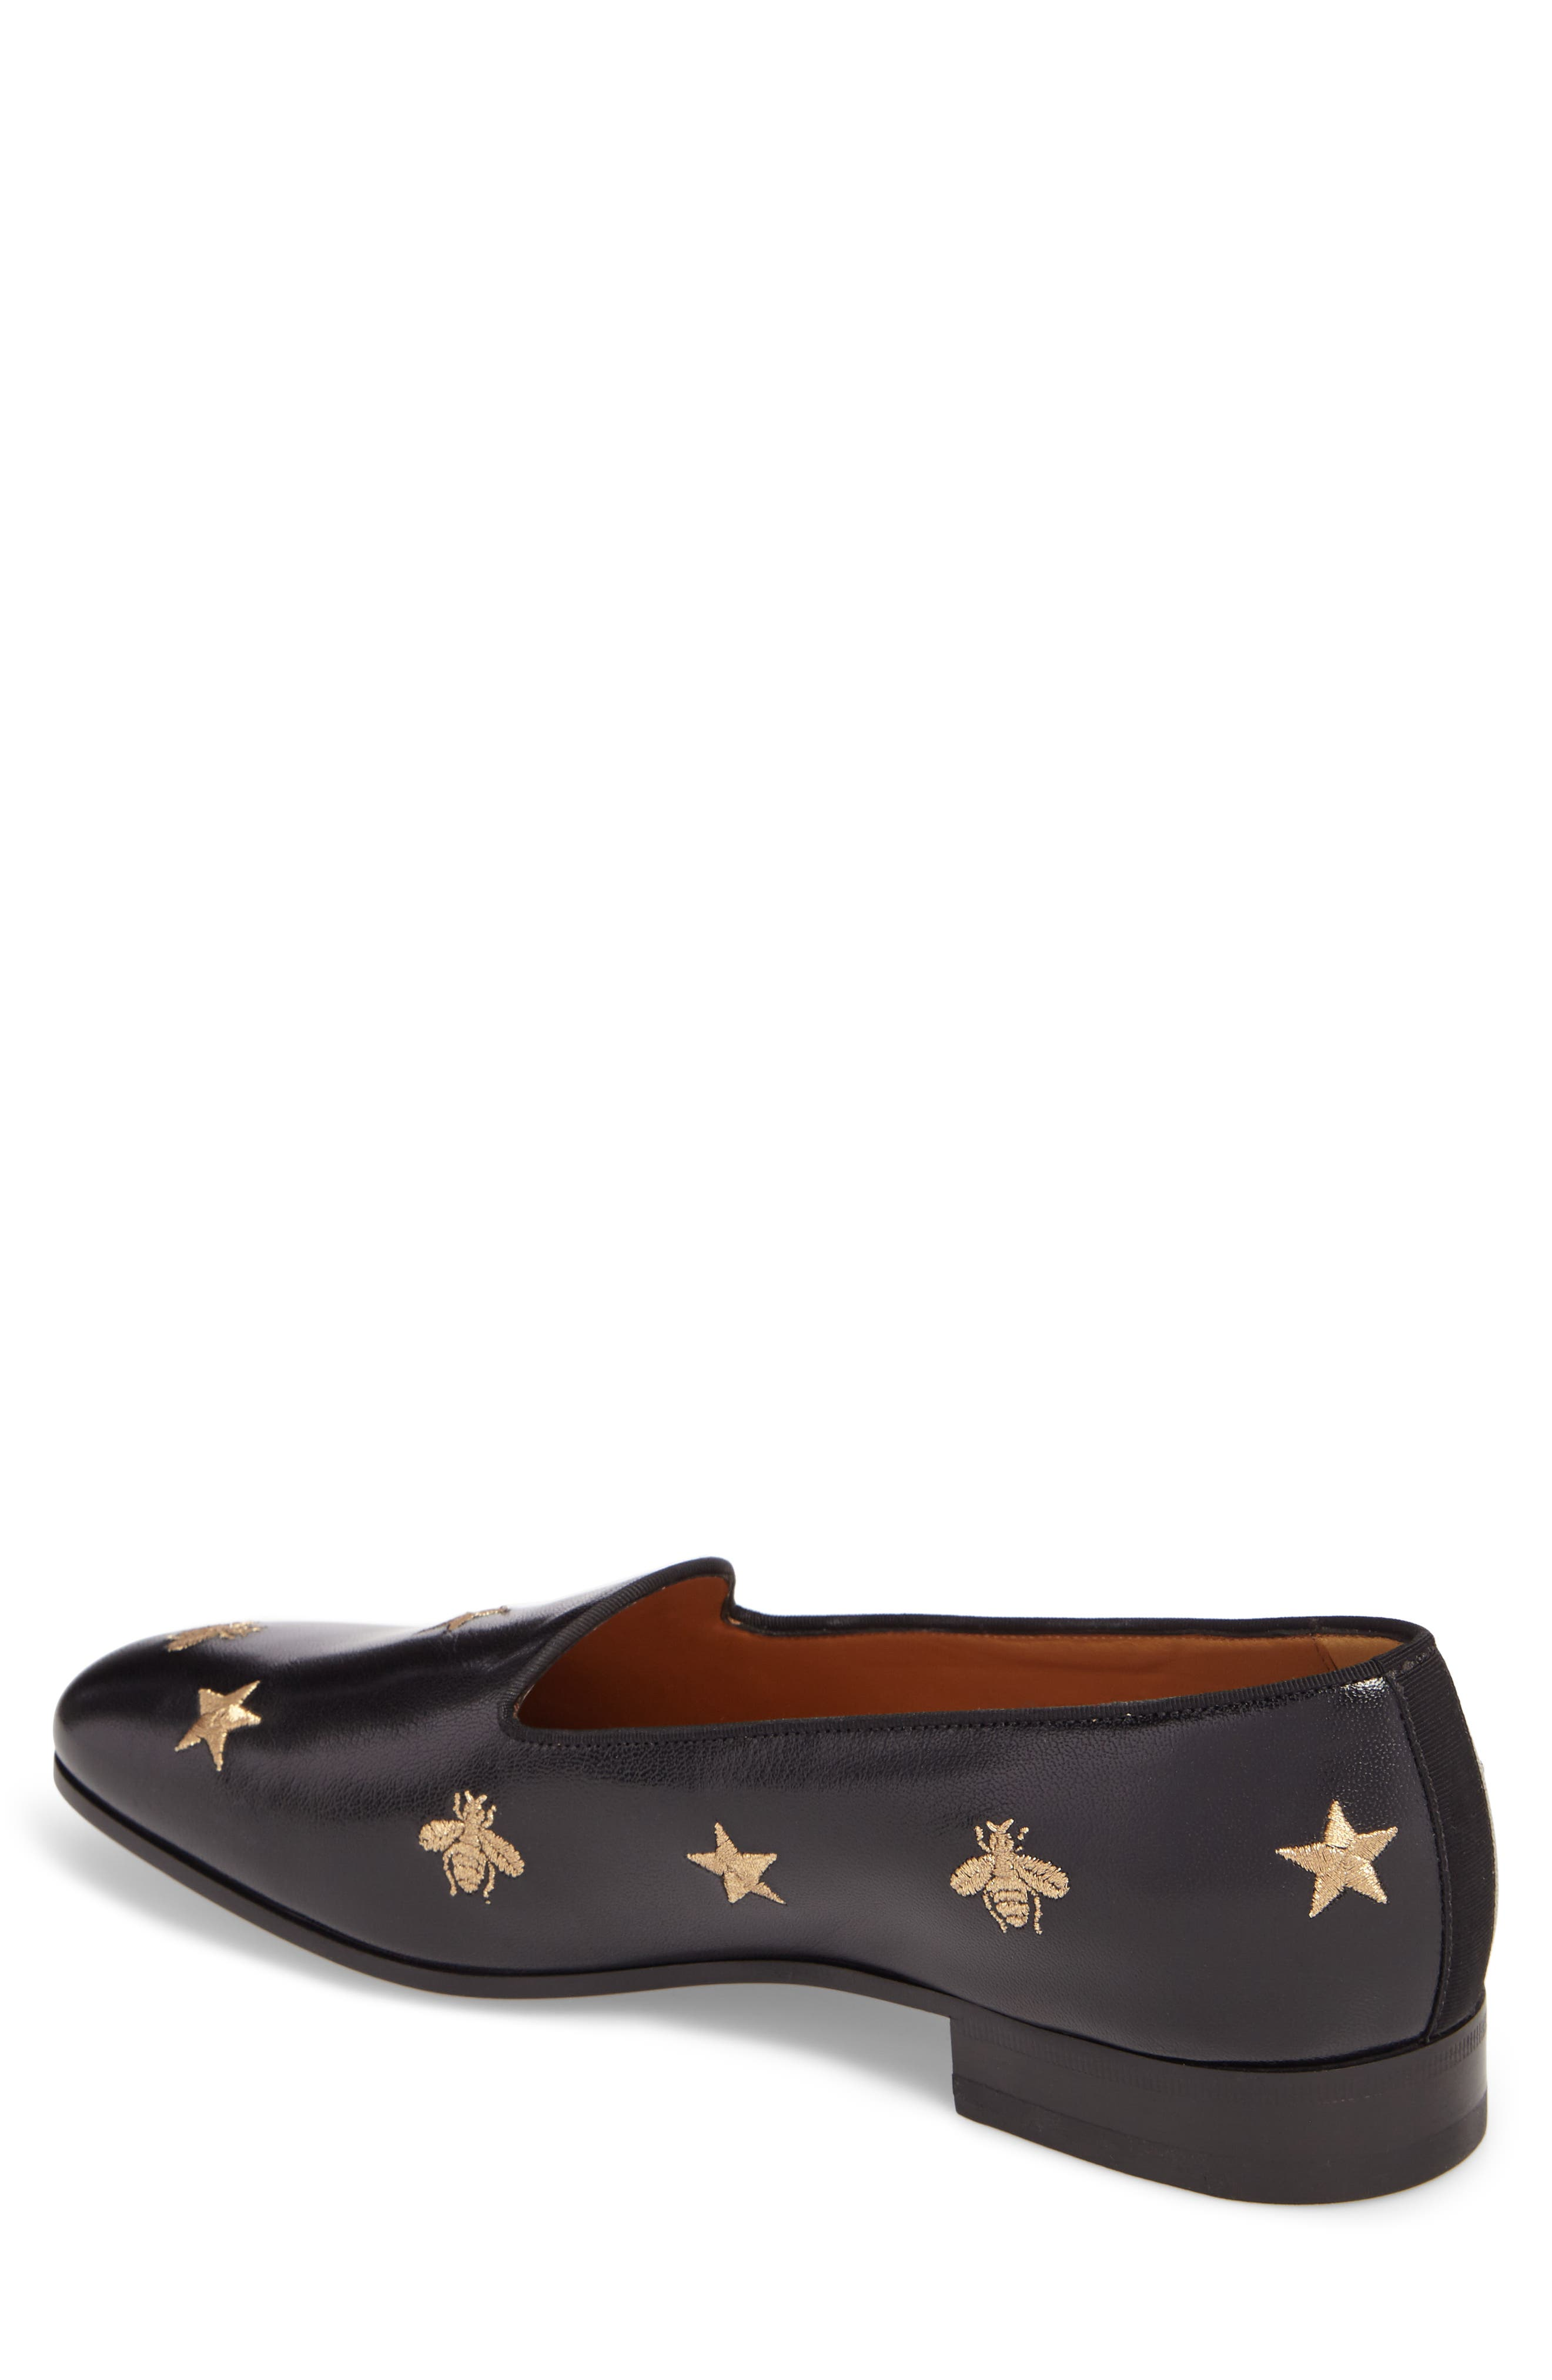 Embroidered Leather Loafer,                             Alternate thumbnail 2, color,                             001